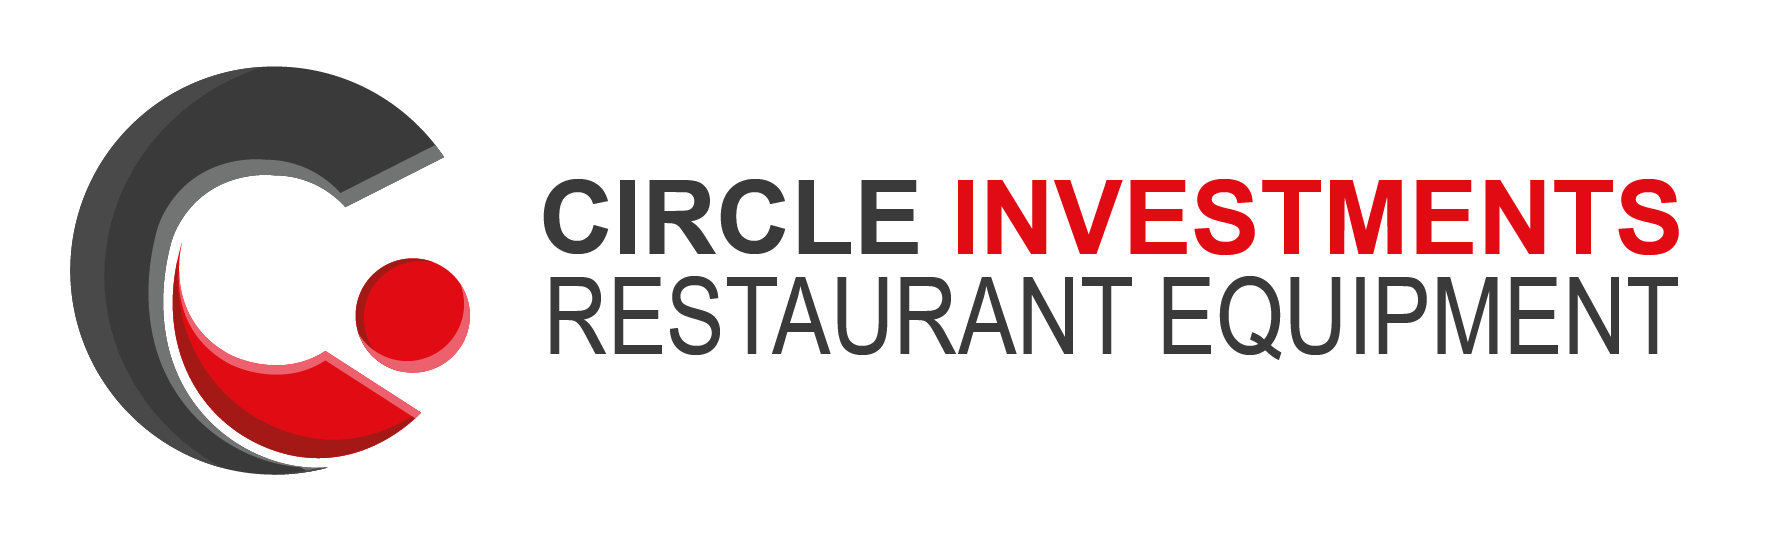 Circle Investments